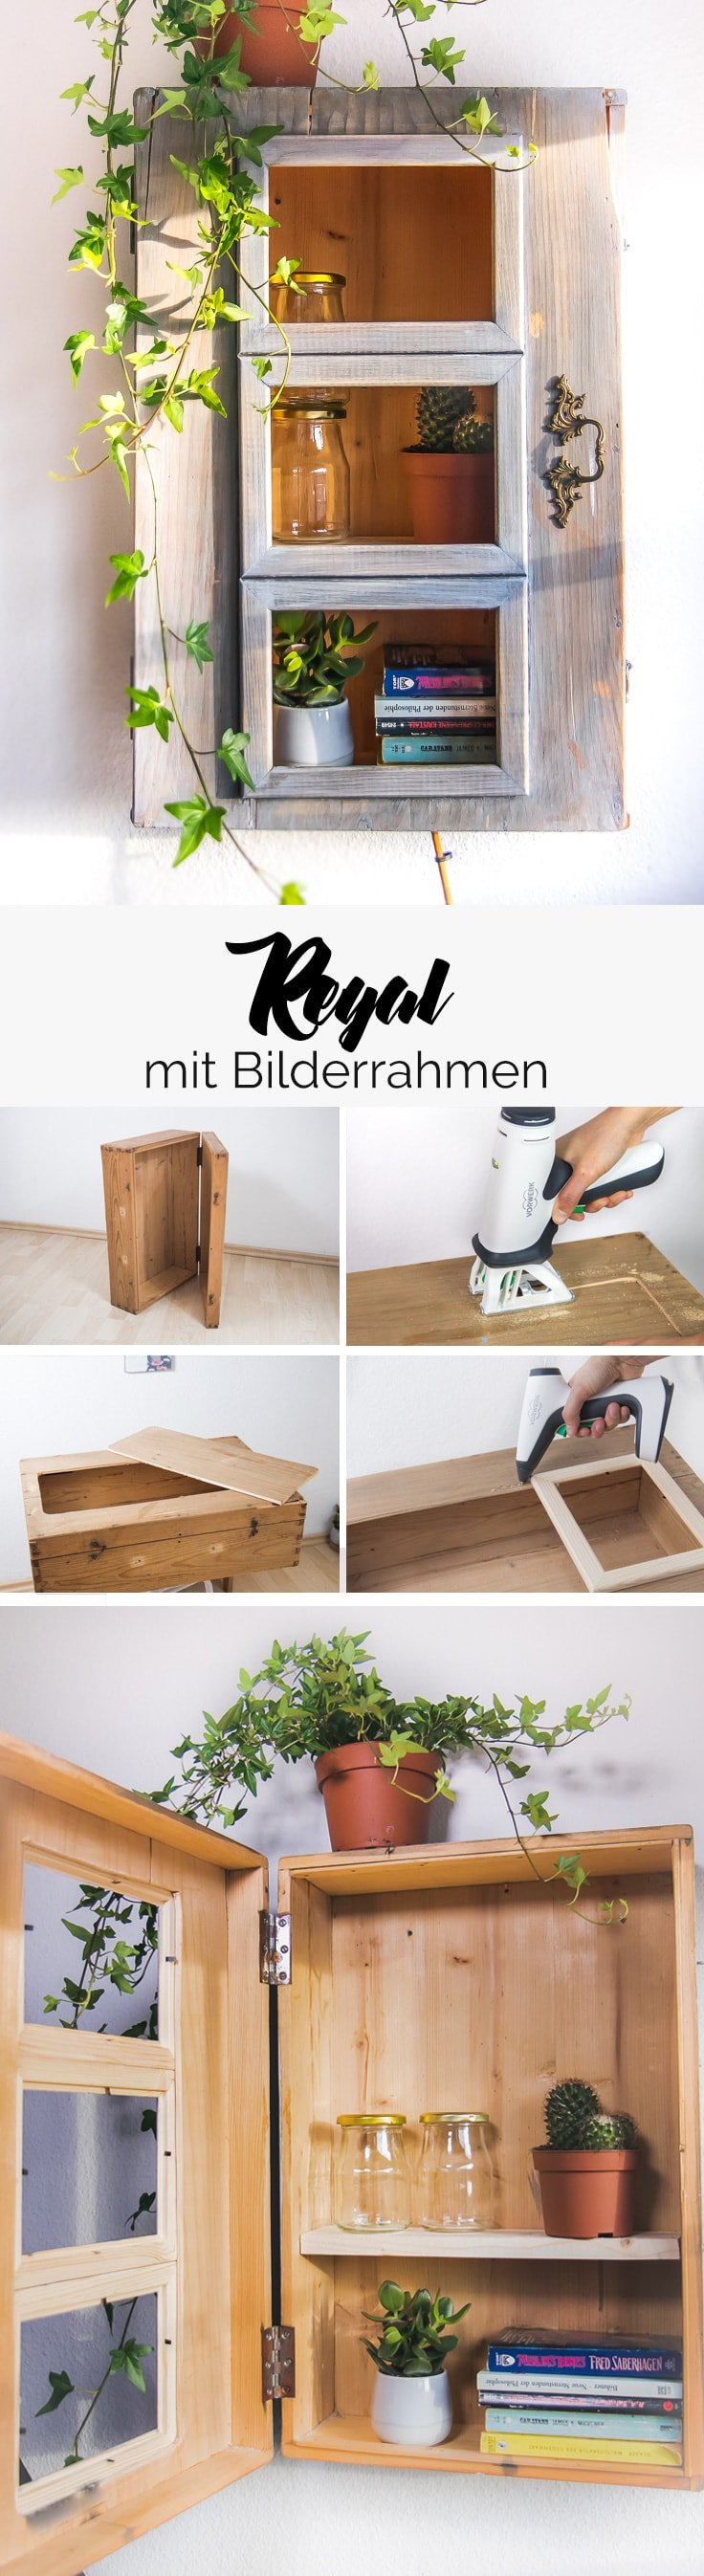 diy vitrinenschrank aus holzm bel ikea bilderrahmen einfach diy. Black Bedroom Furniture Sets. Home Design Ideas